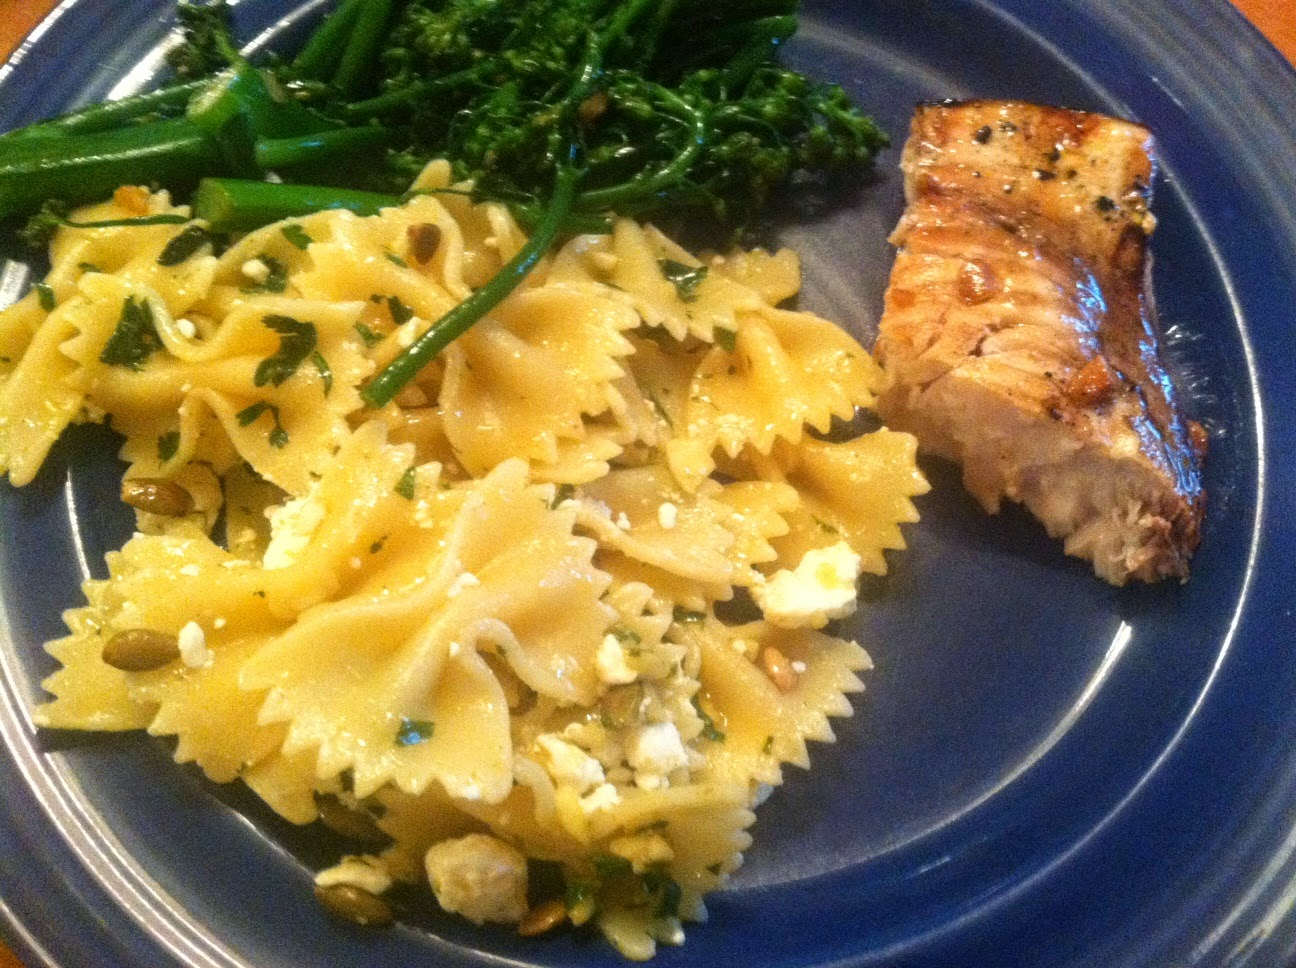 Grilled Swordfish with Garlic Soy Marinade and side of Farfalle with Feta and Chipotle